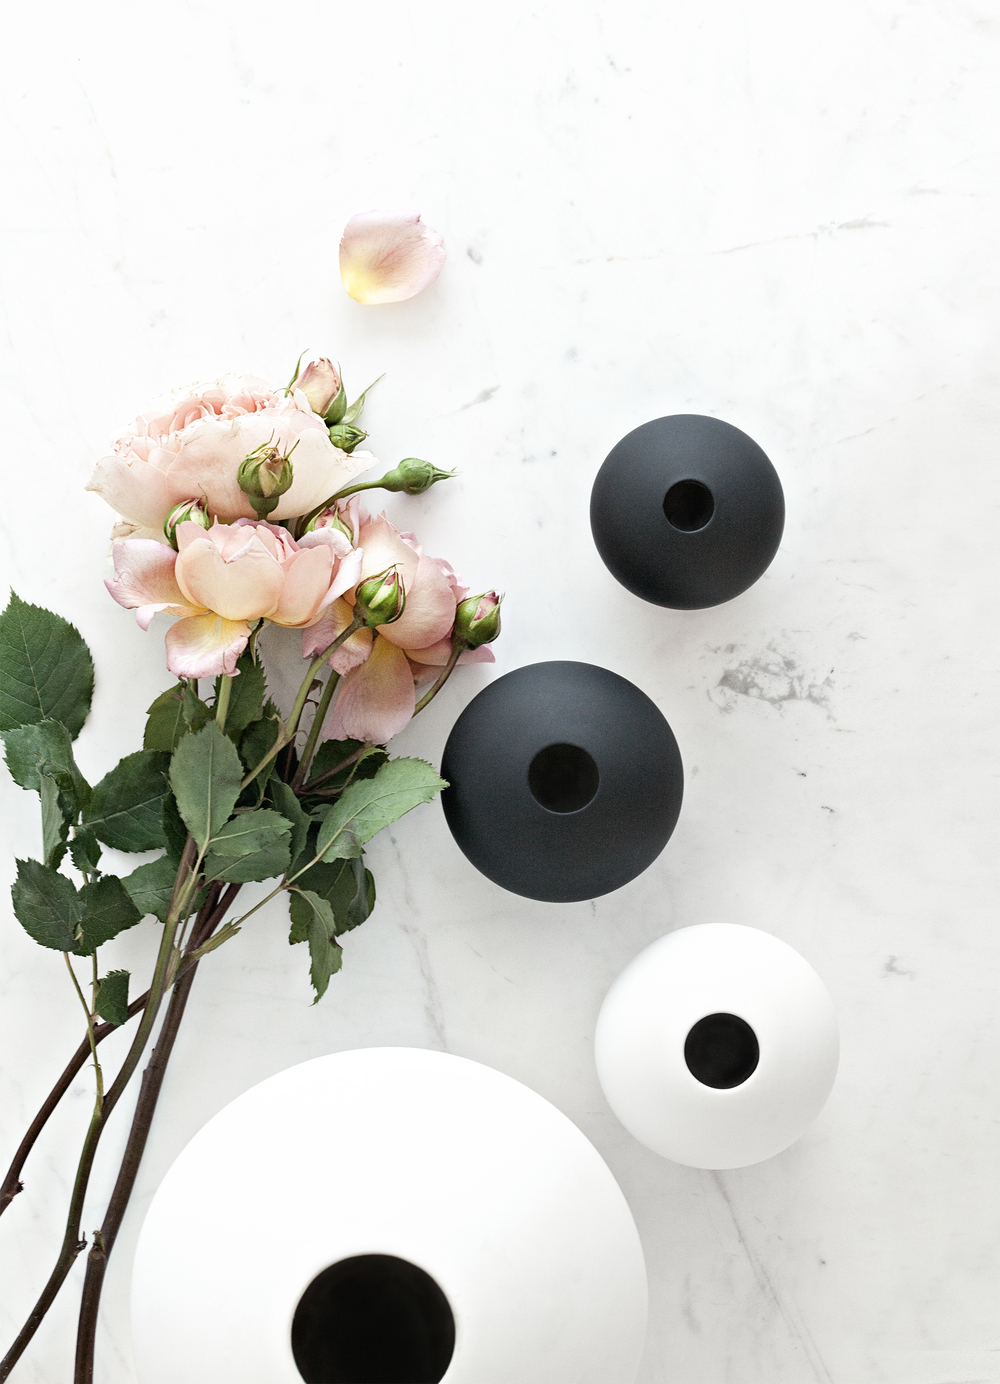 Cooee Design Ceramic Vases in Black and White | Serax Belgium Marble Table